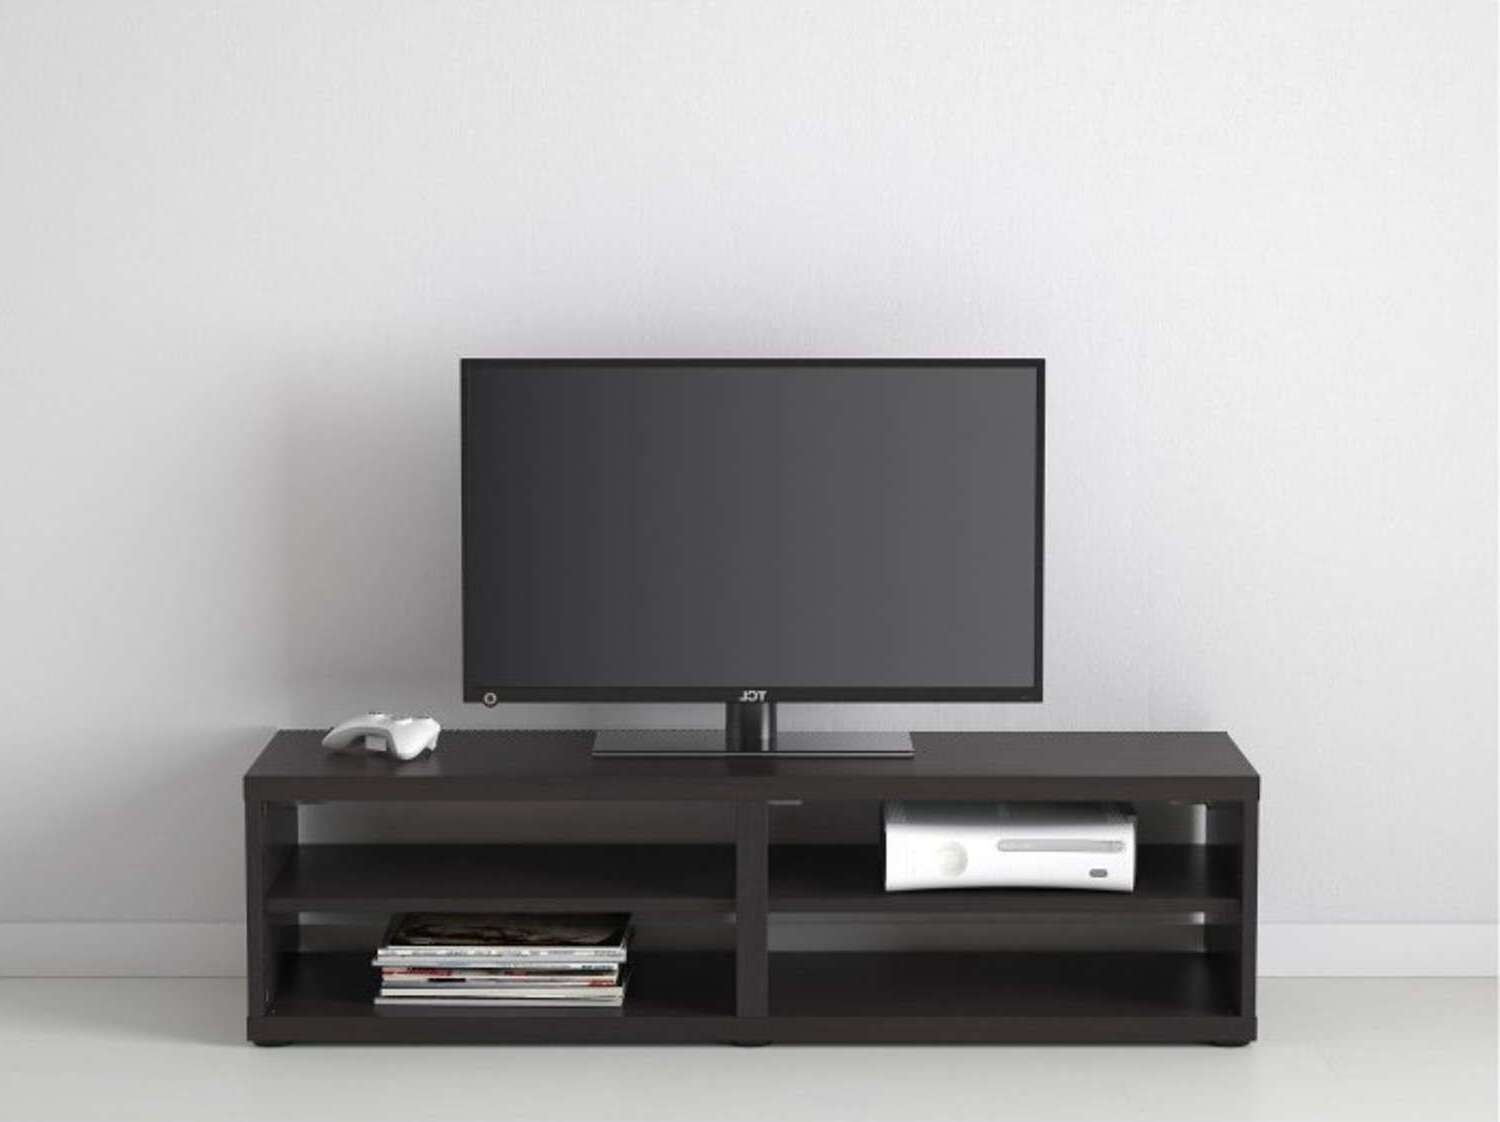 Modern Tv Stands & Units | Furniturebox With Black Modern Tv Stands (View 11 of 15)